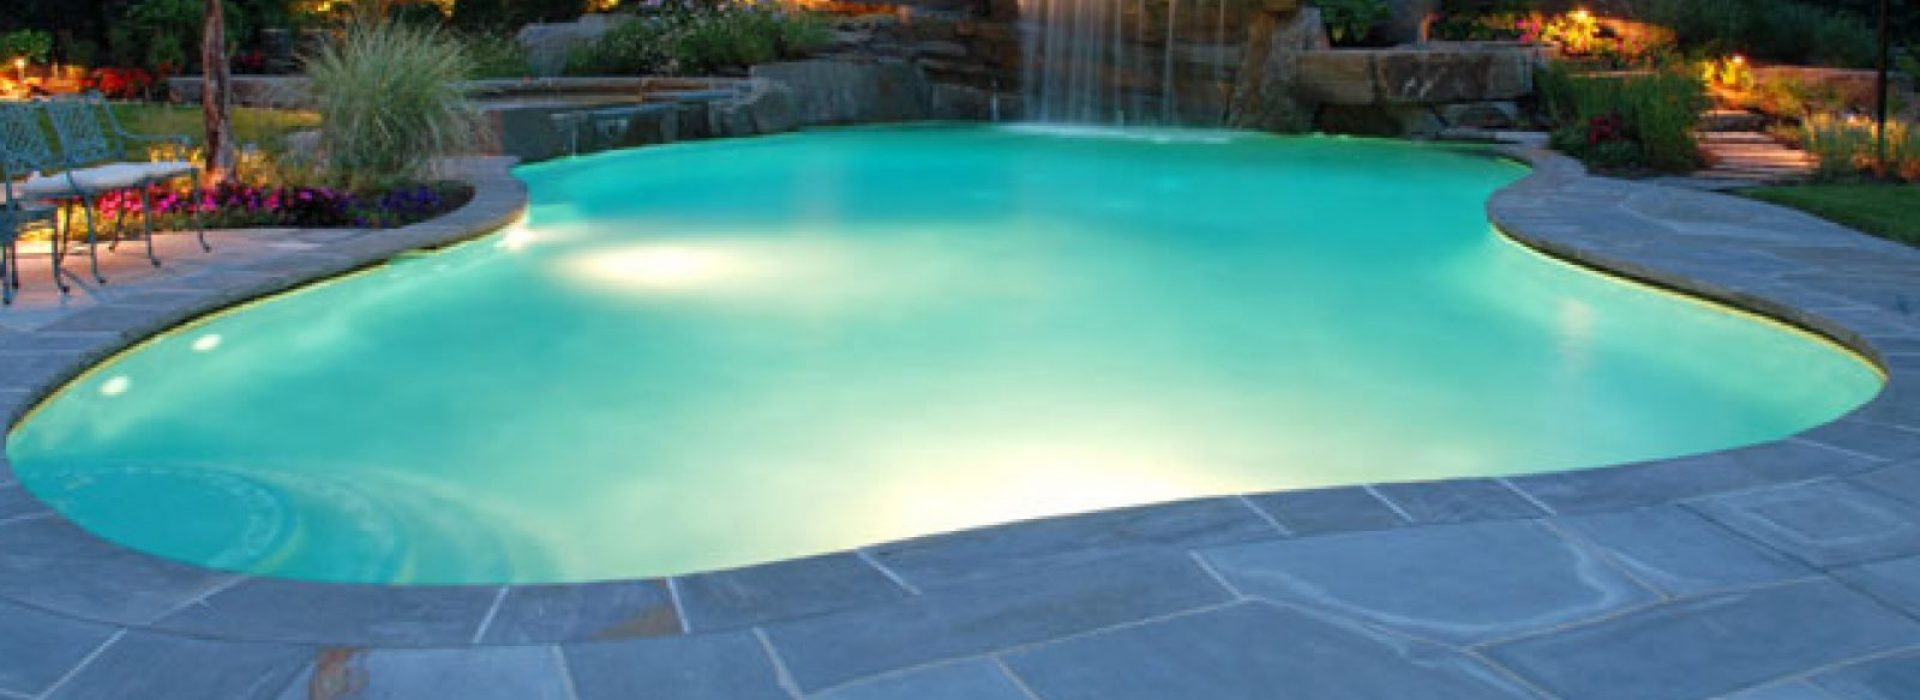 Services water supply dubai for Swimming pool suppliers in dubai